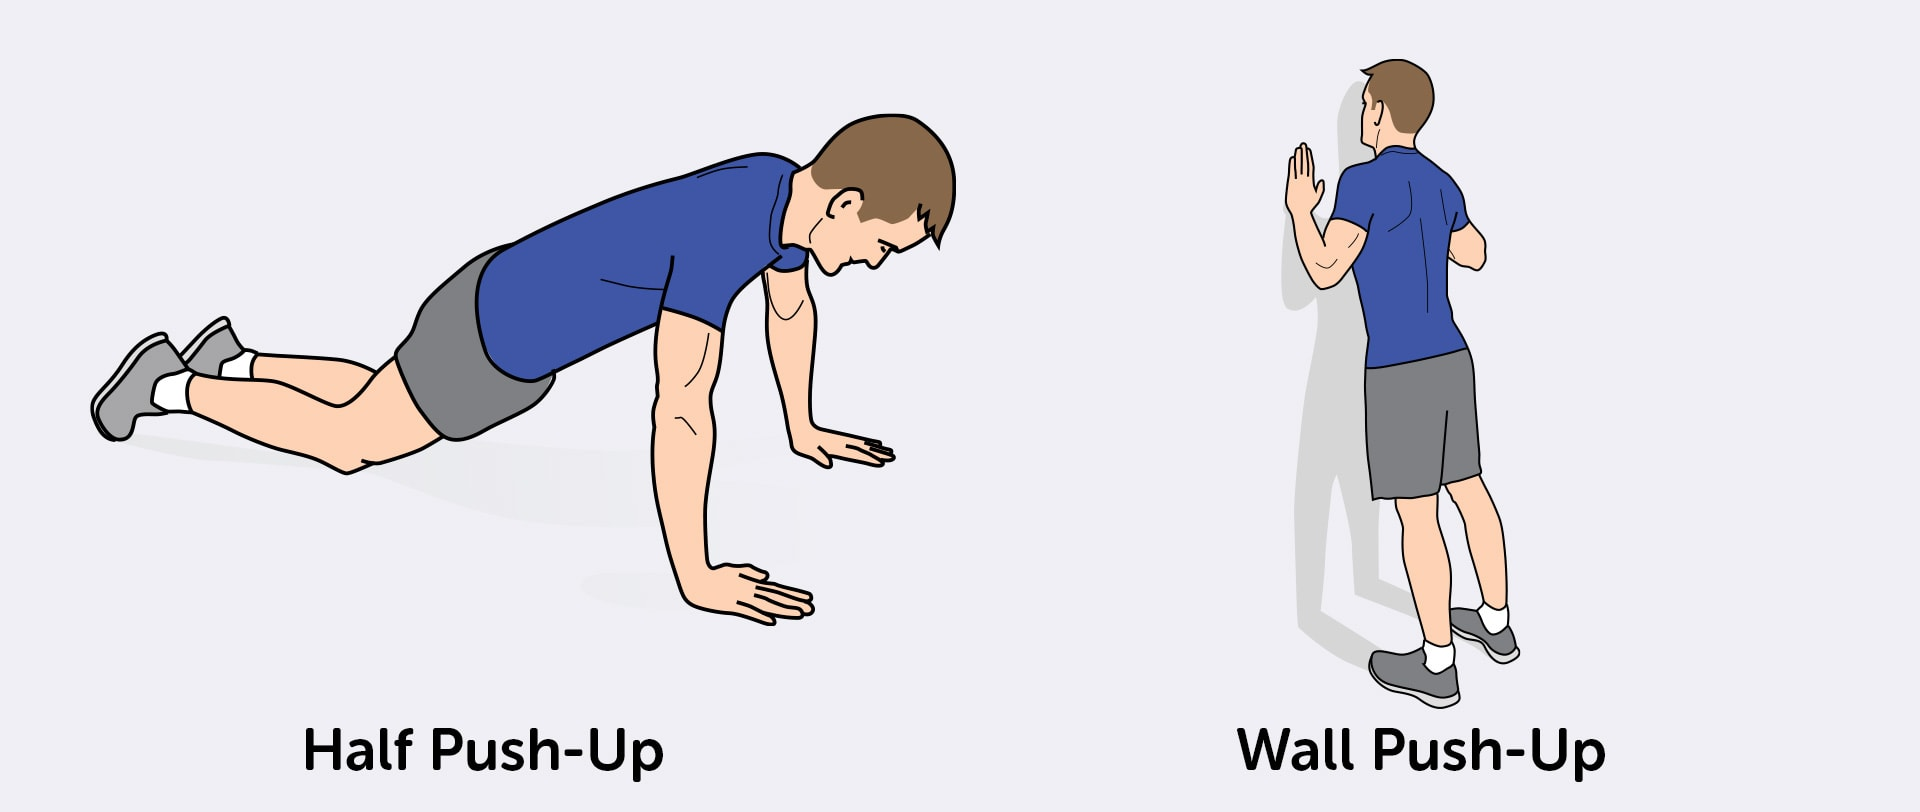 Half push-ups and wall push-ups are an easier alternative for beginners.